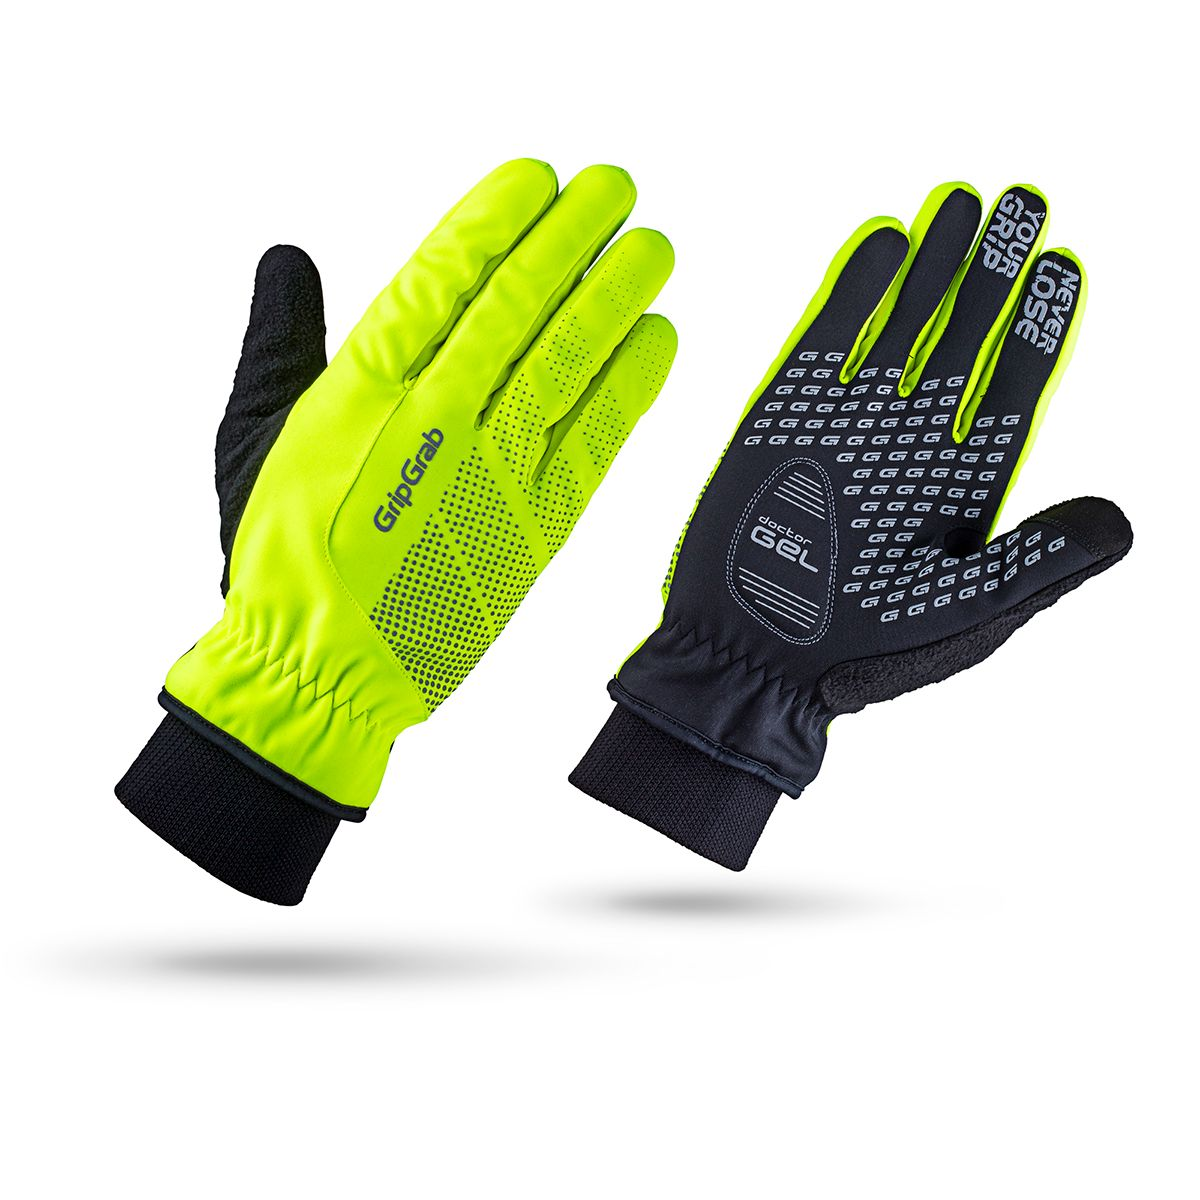 RIDE WINDPROOF HI-VIS WINTER GLOVE Radhandschuhe